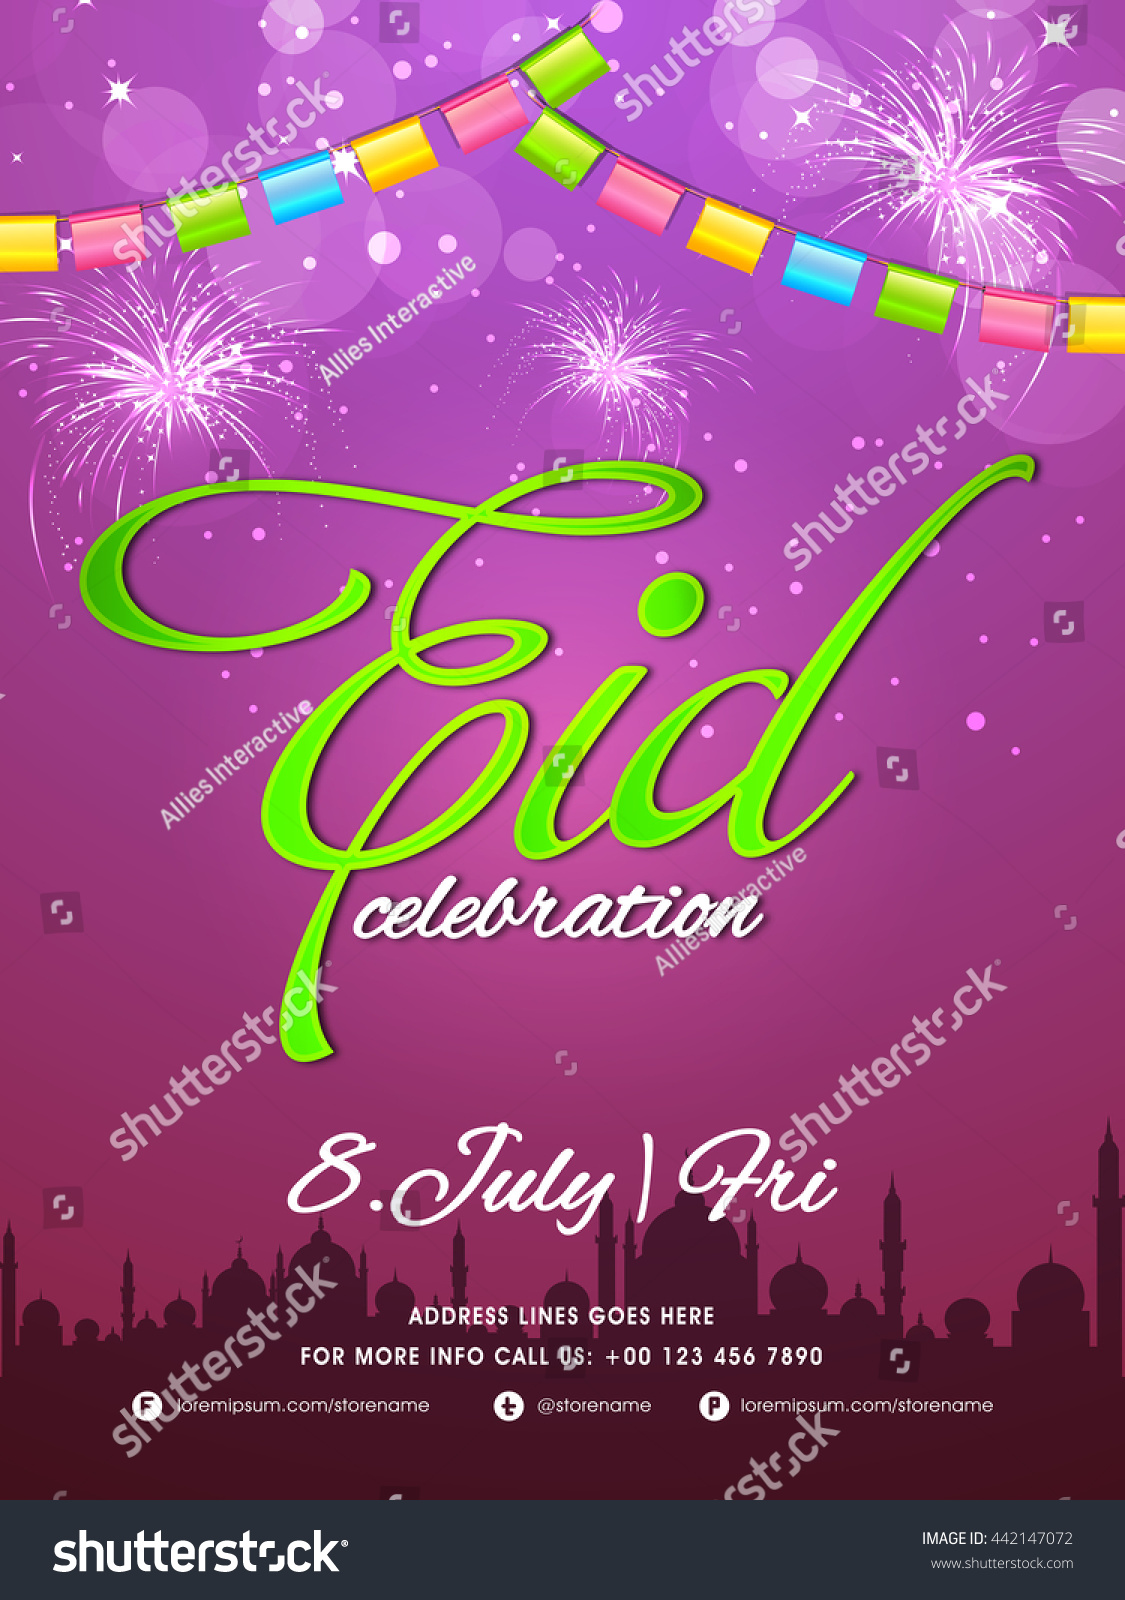 Elegant Party Celebration Flyer Glowing Banner Stock Vector ...